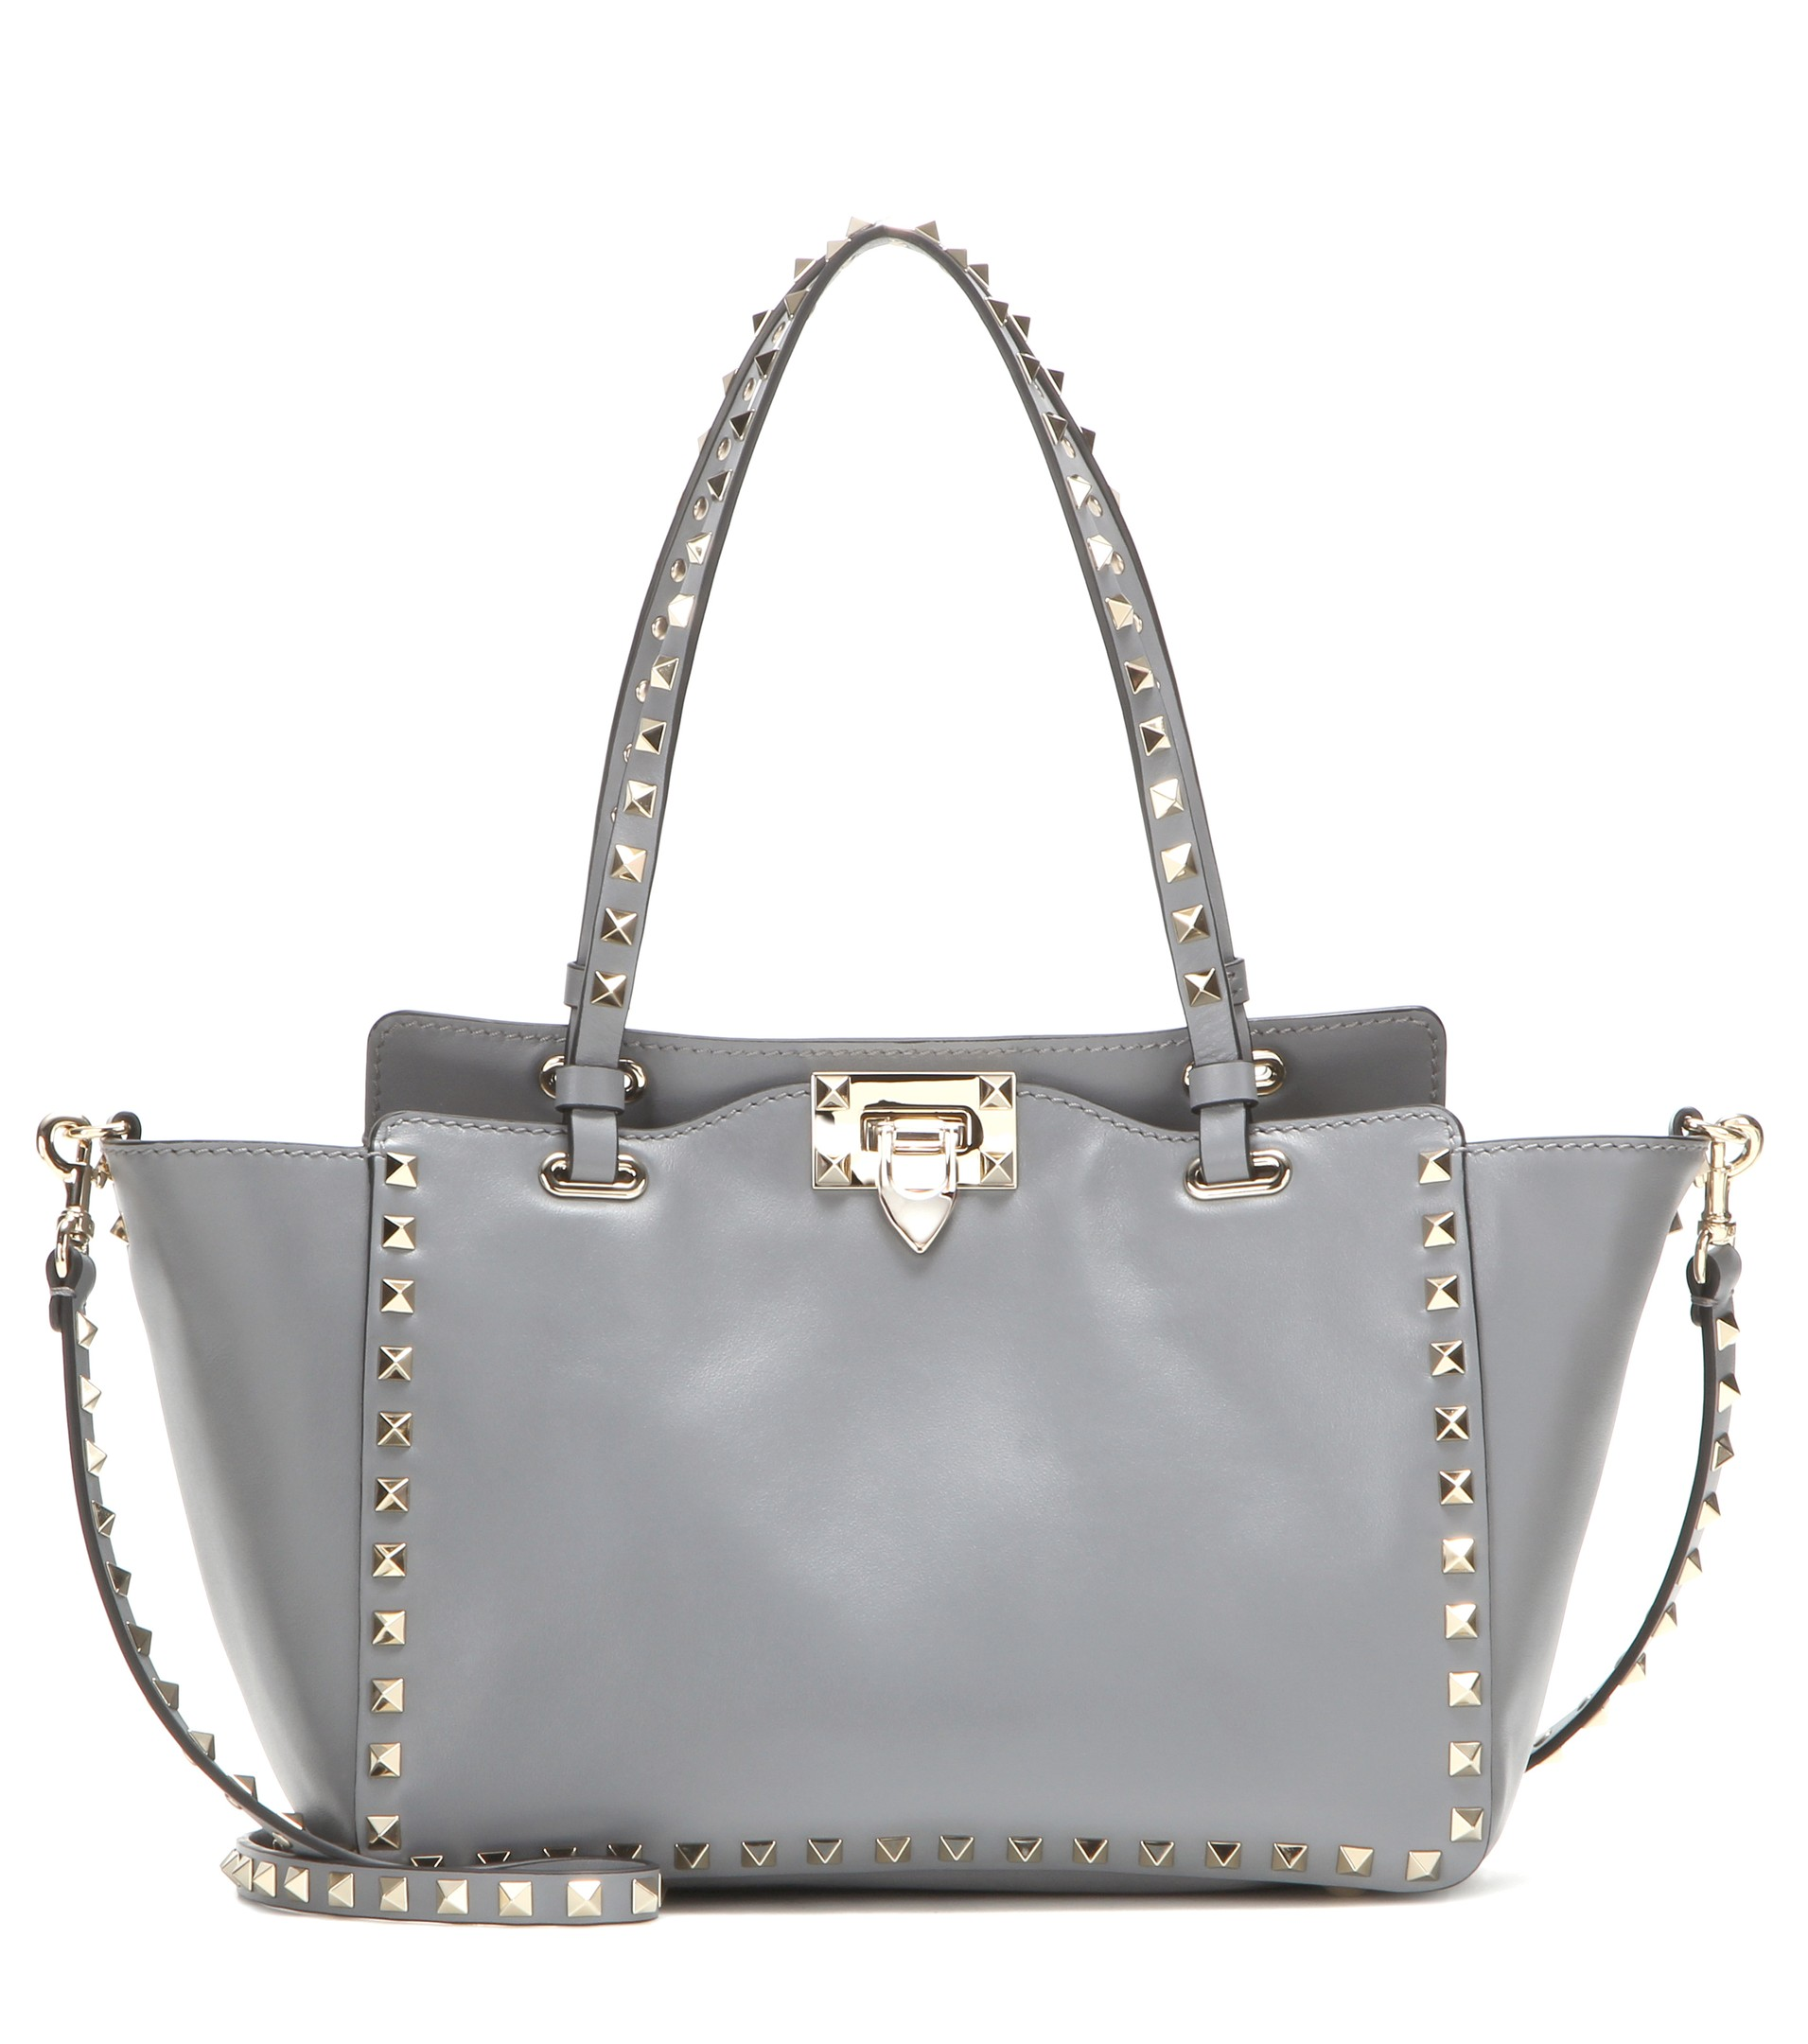 Valentino Garavani Rockstud Small leather tote bag in color gray